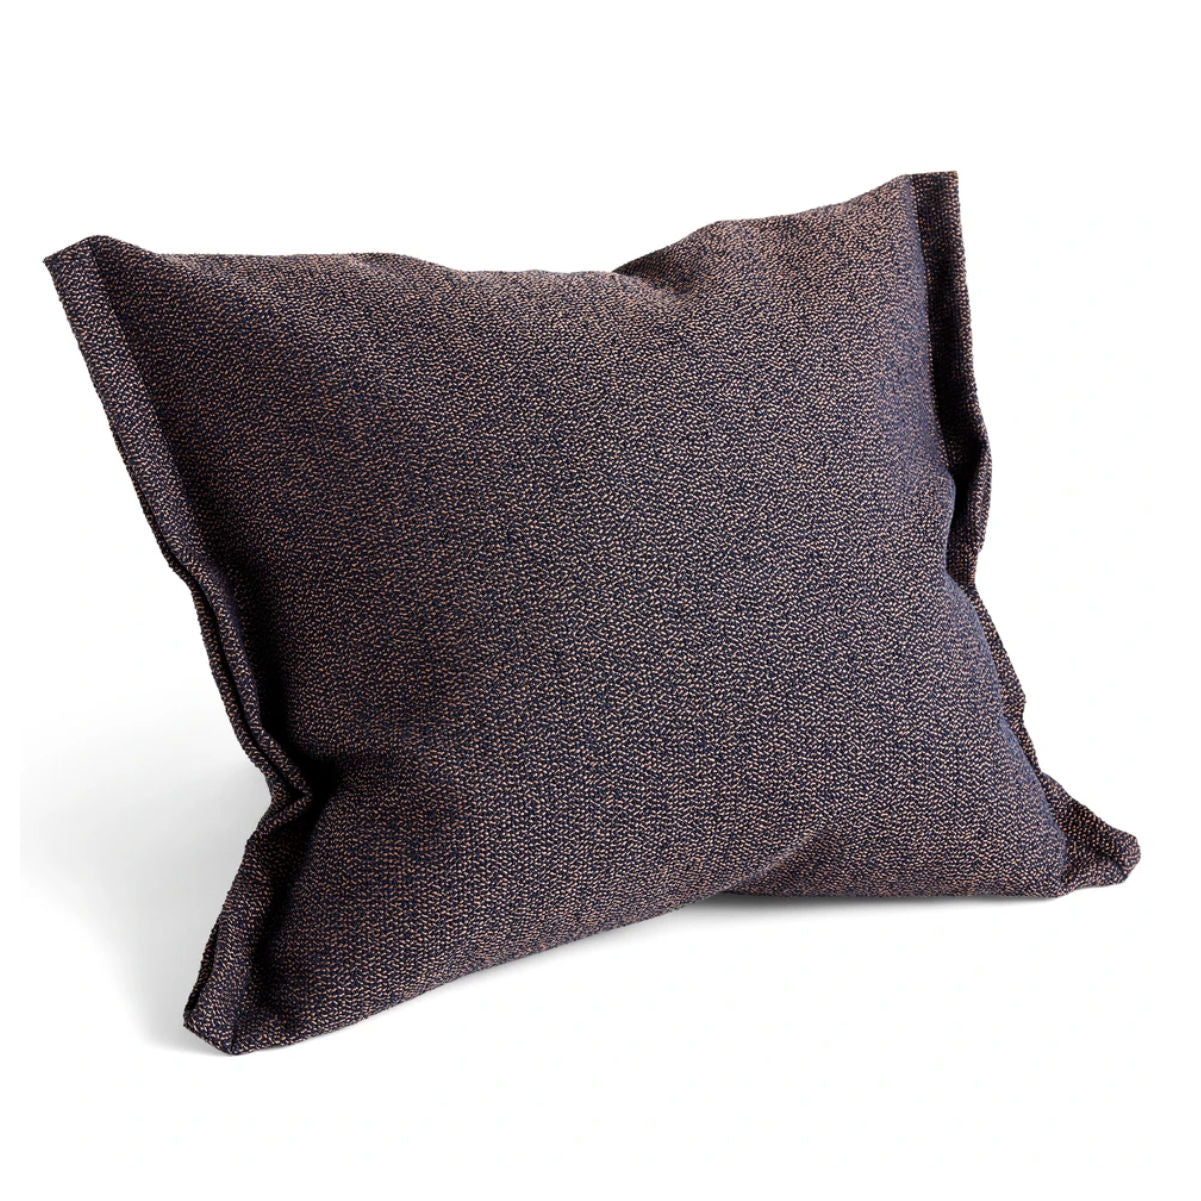 Hay Plica Sprinkle cushion, dark blue